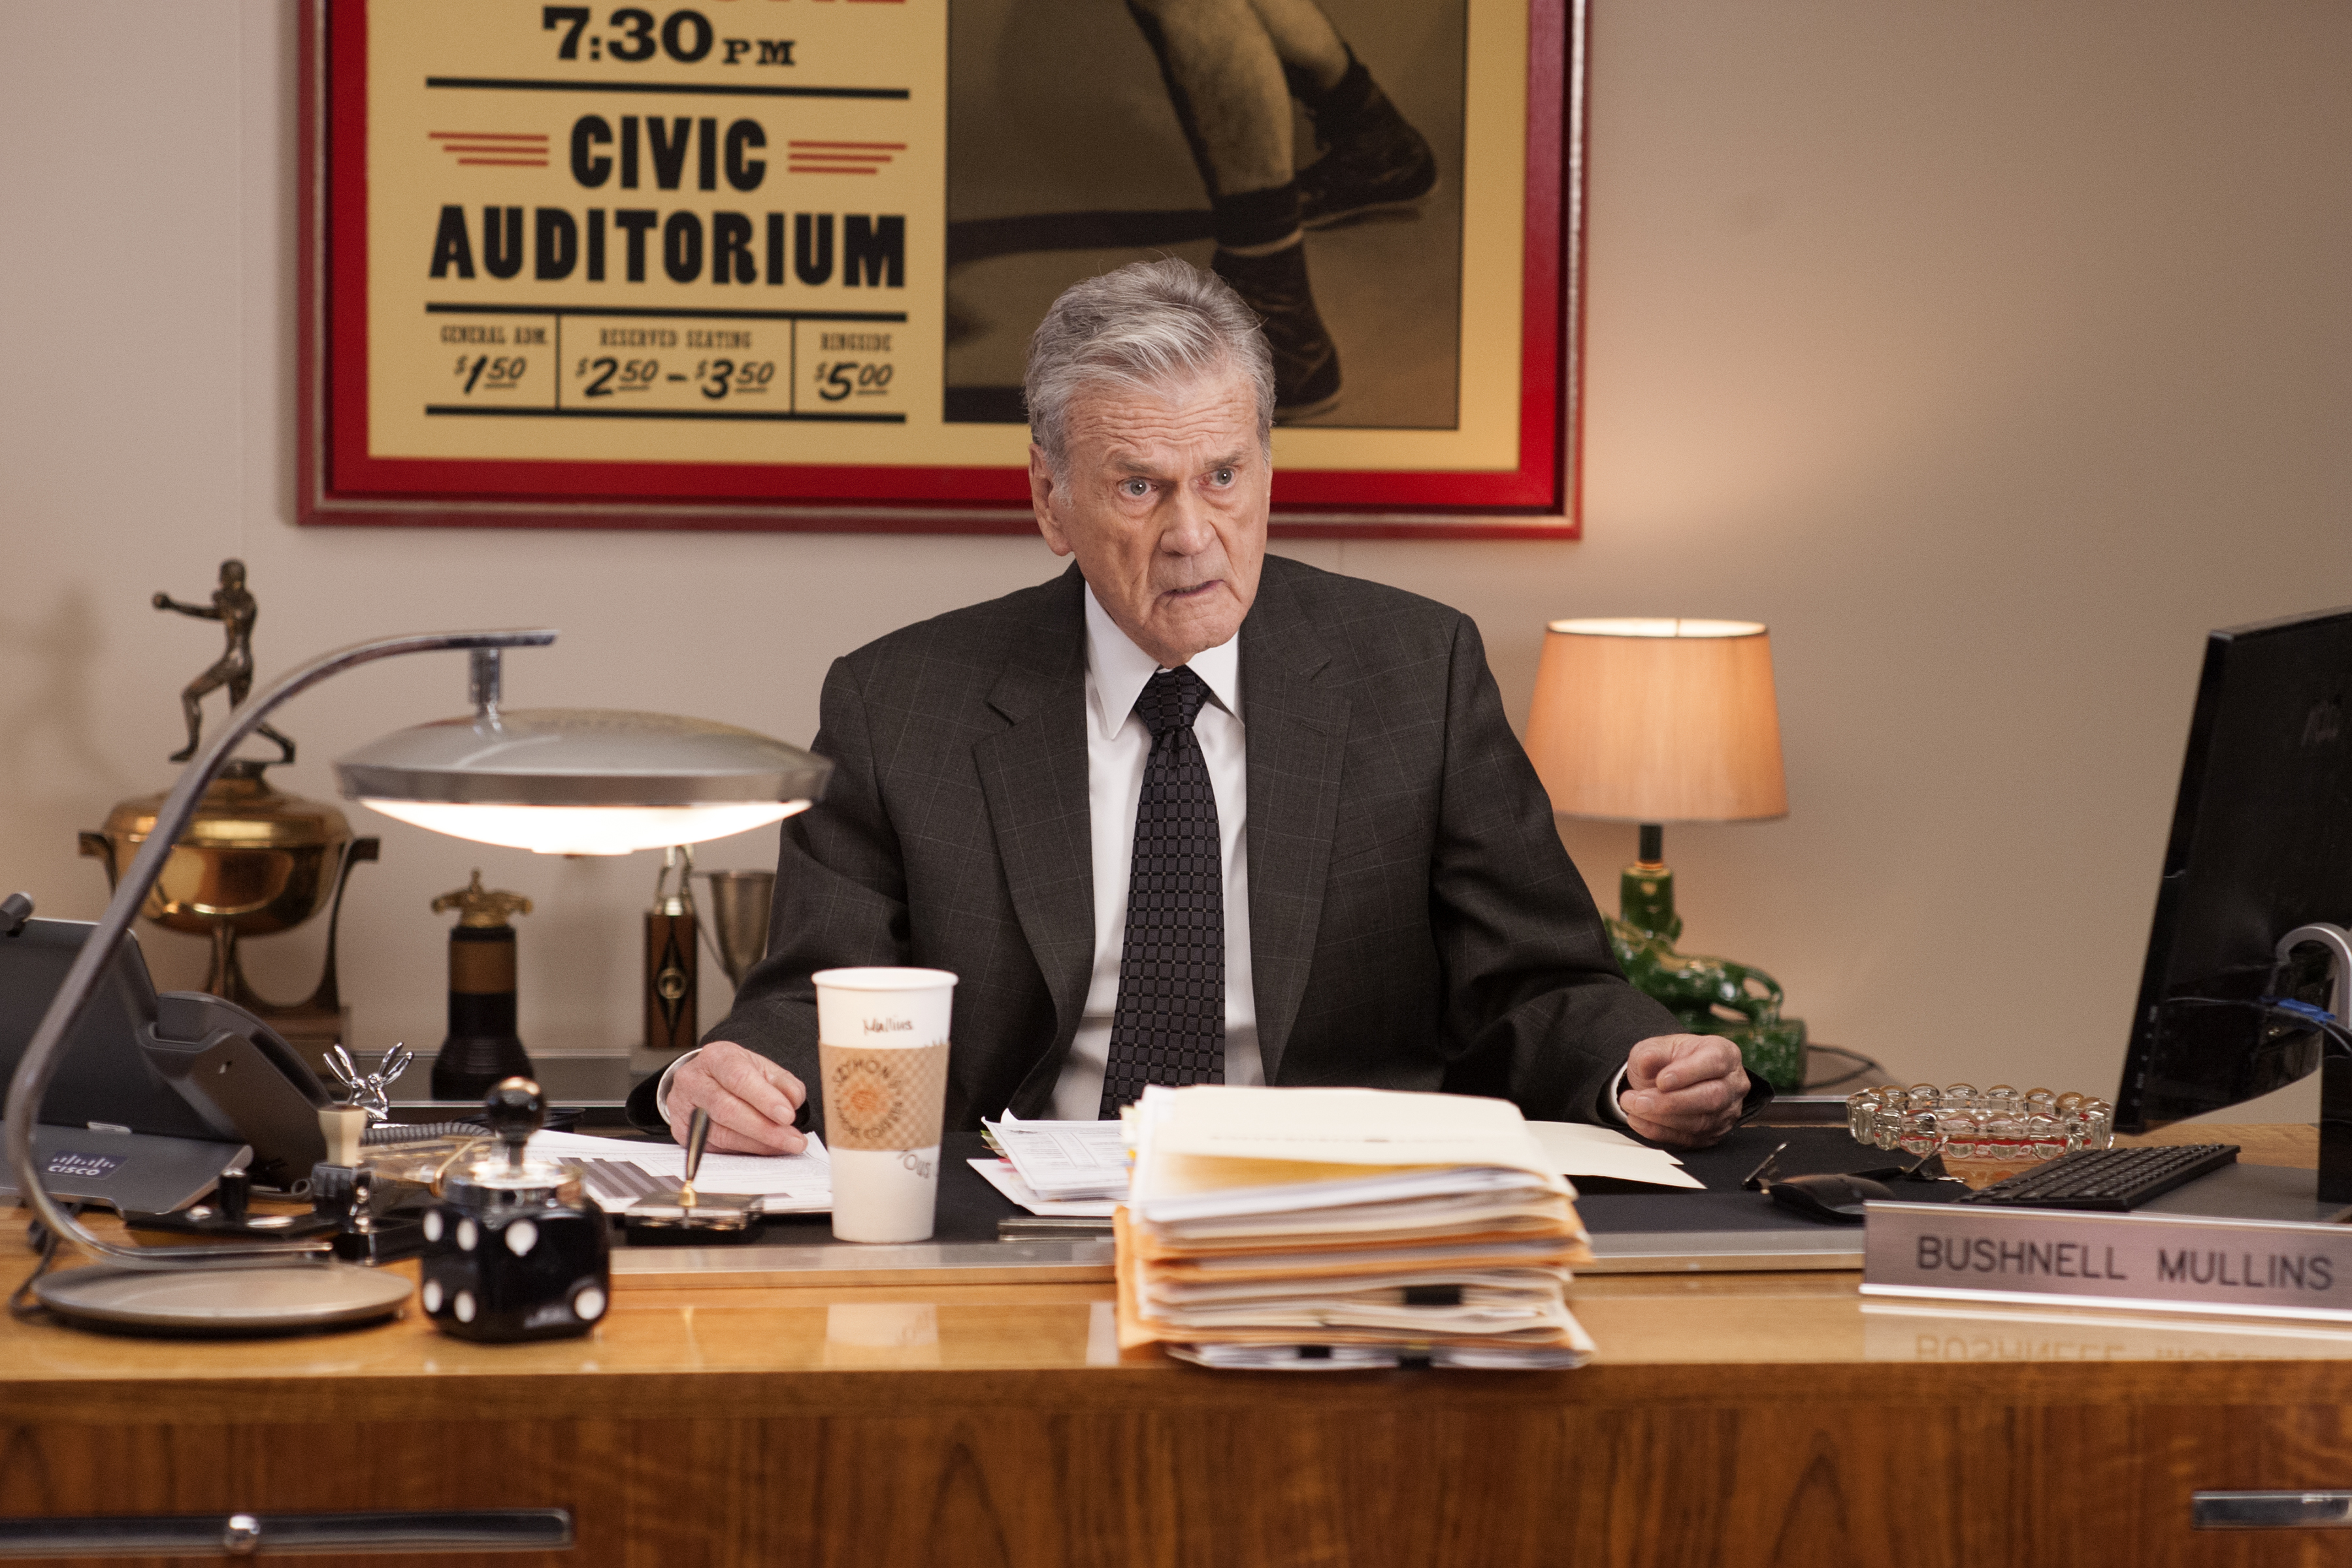 rr 15517 r Recapping Twin Peaks: The Return: Part 6